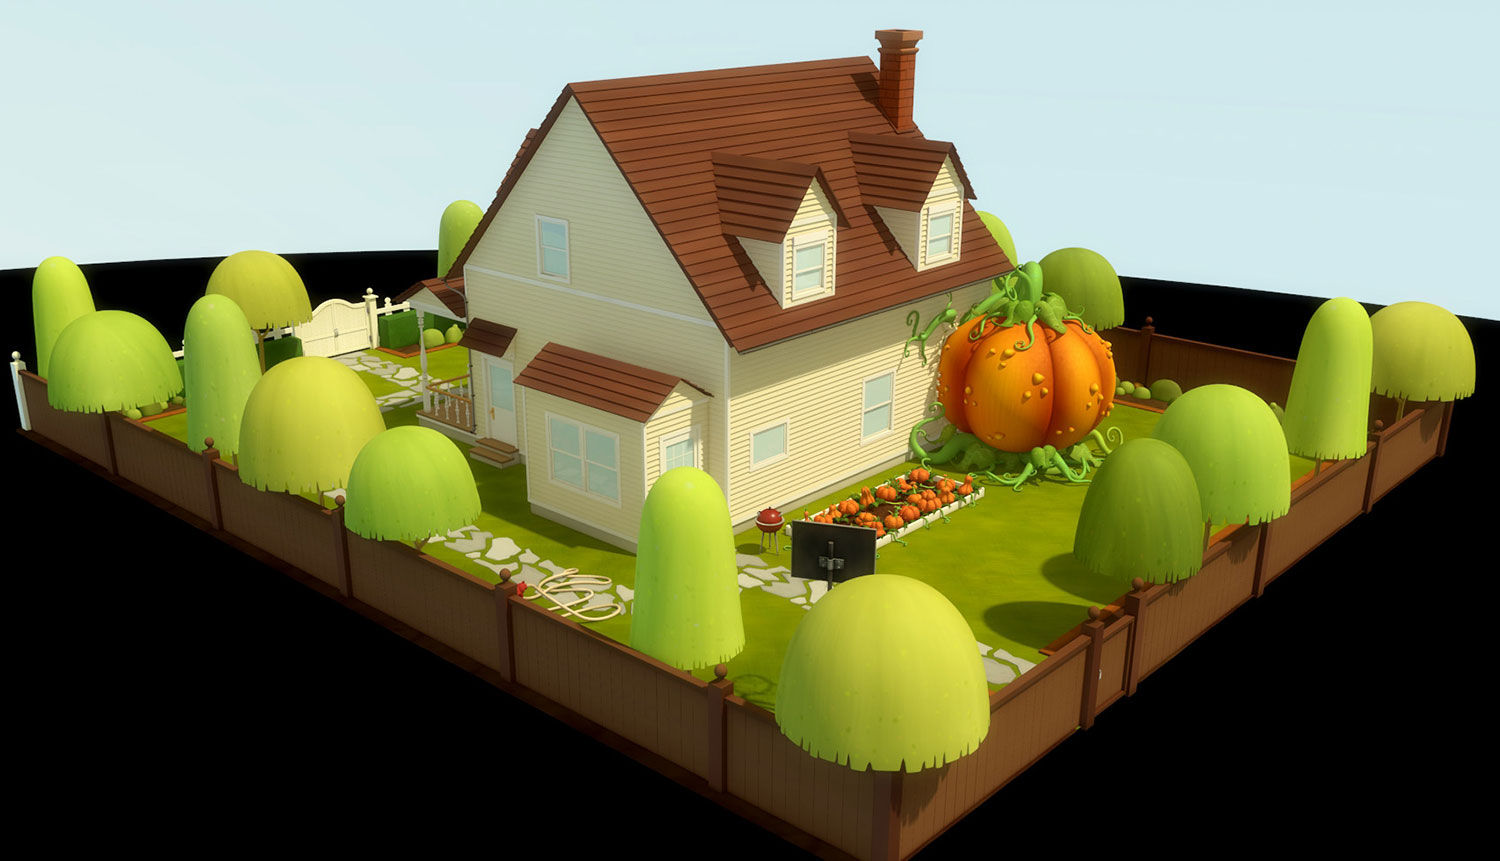 green-house-pumpkin-reports